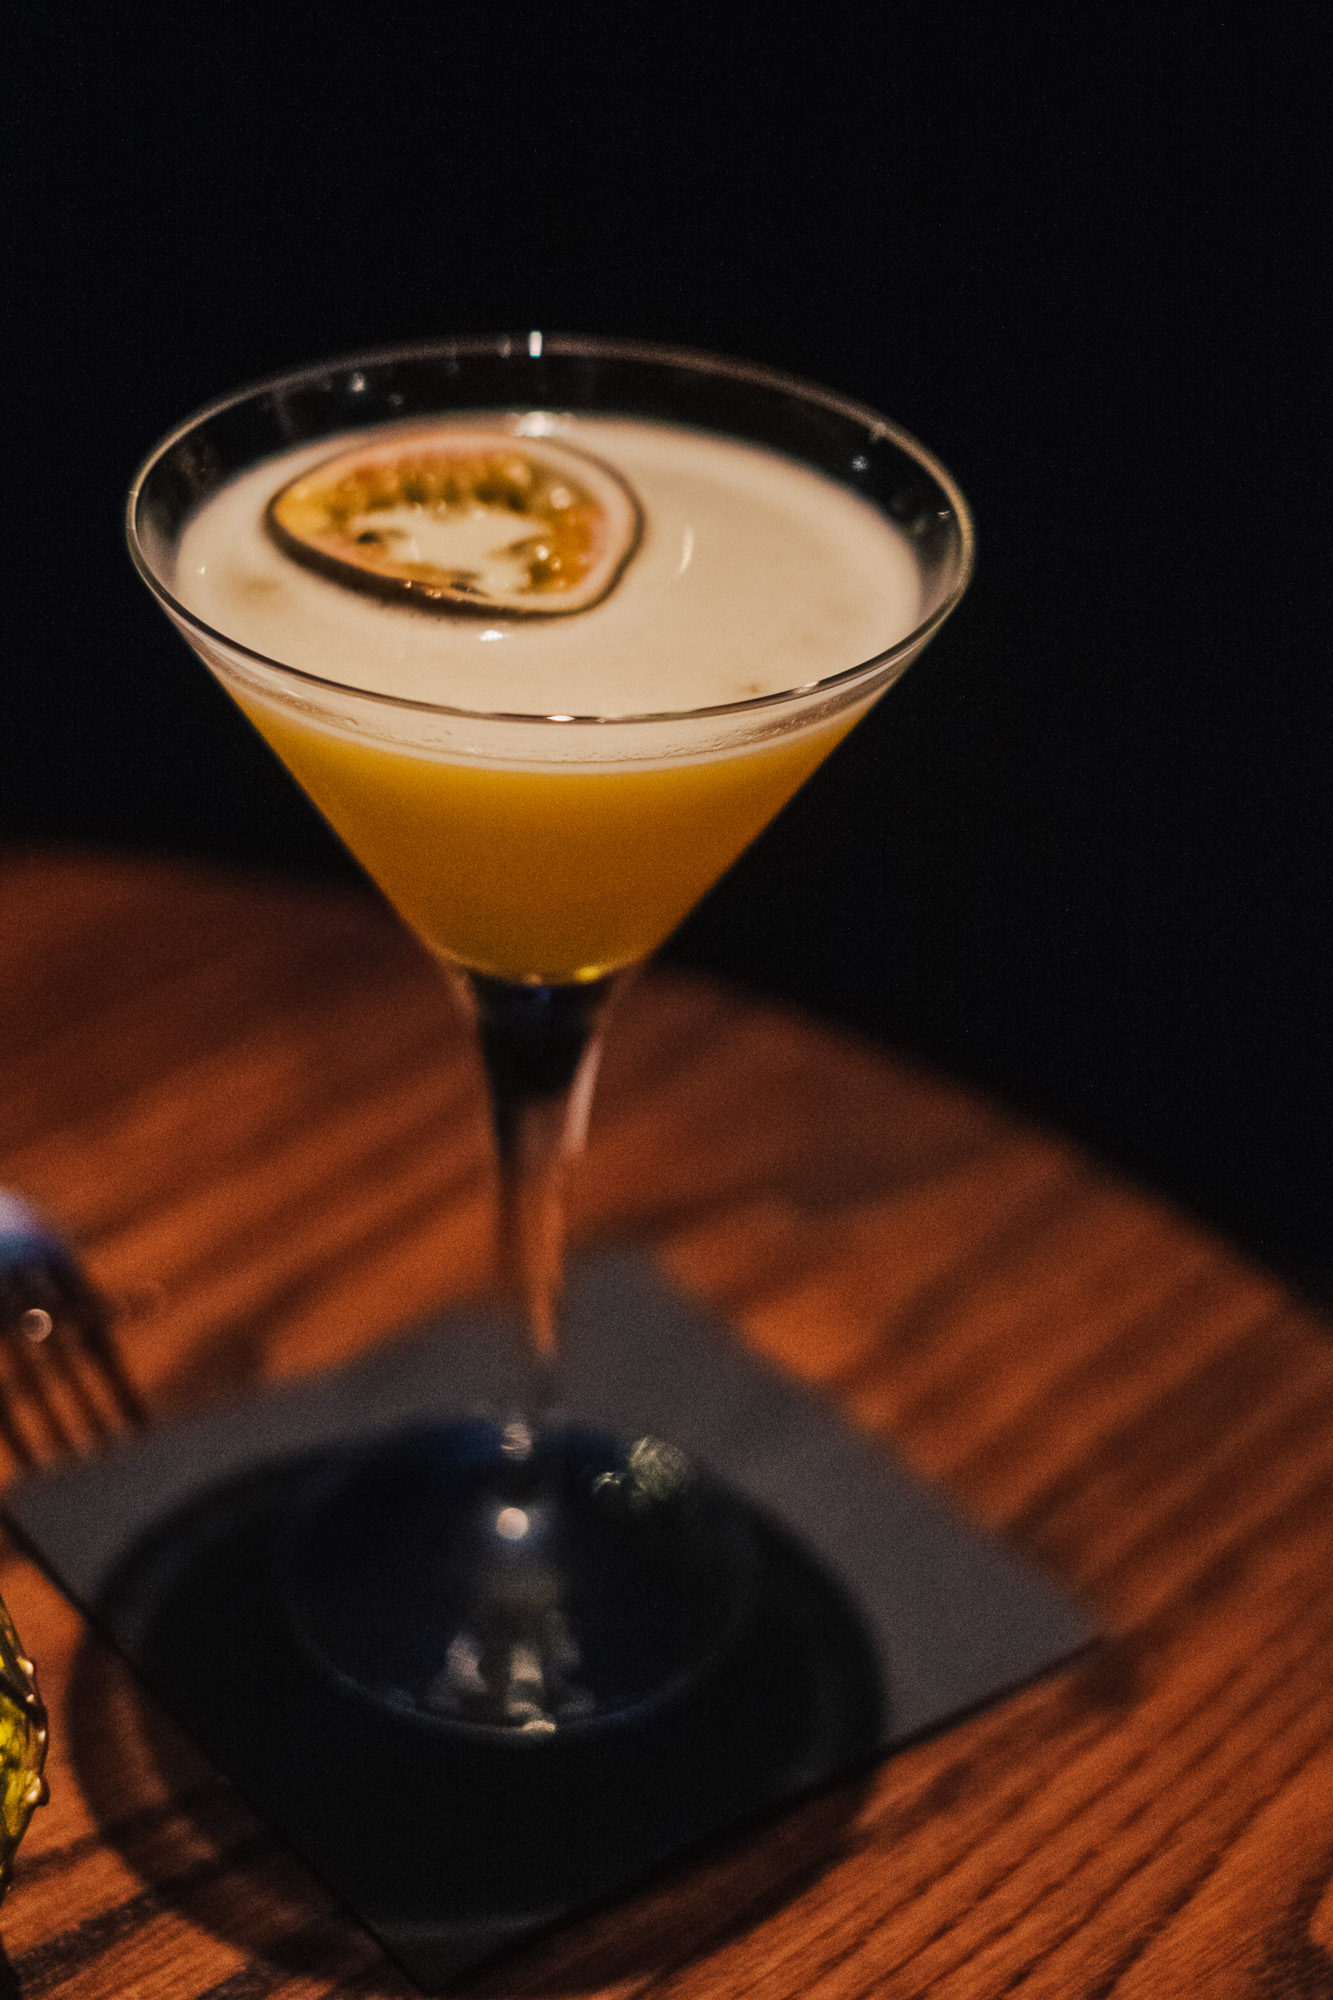 Passion Fruit Chutney Martini at Benares, a modern Indian food with a contemporary British twist in Mayfair London